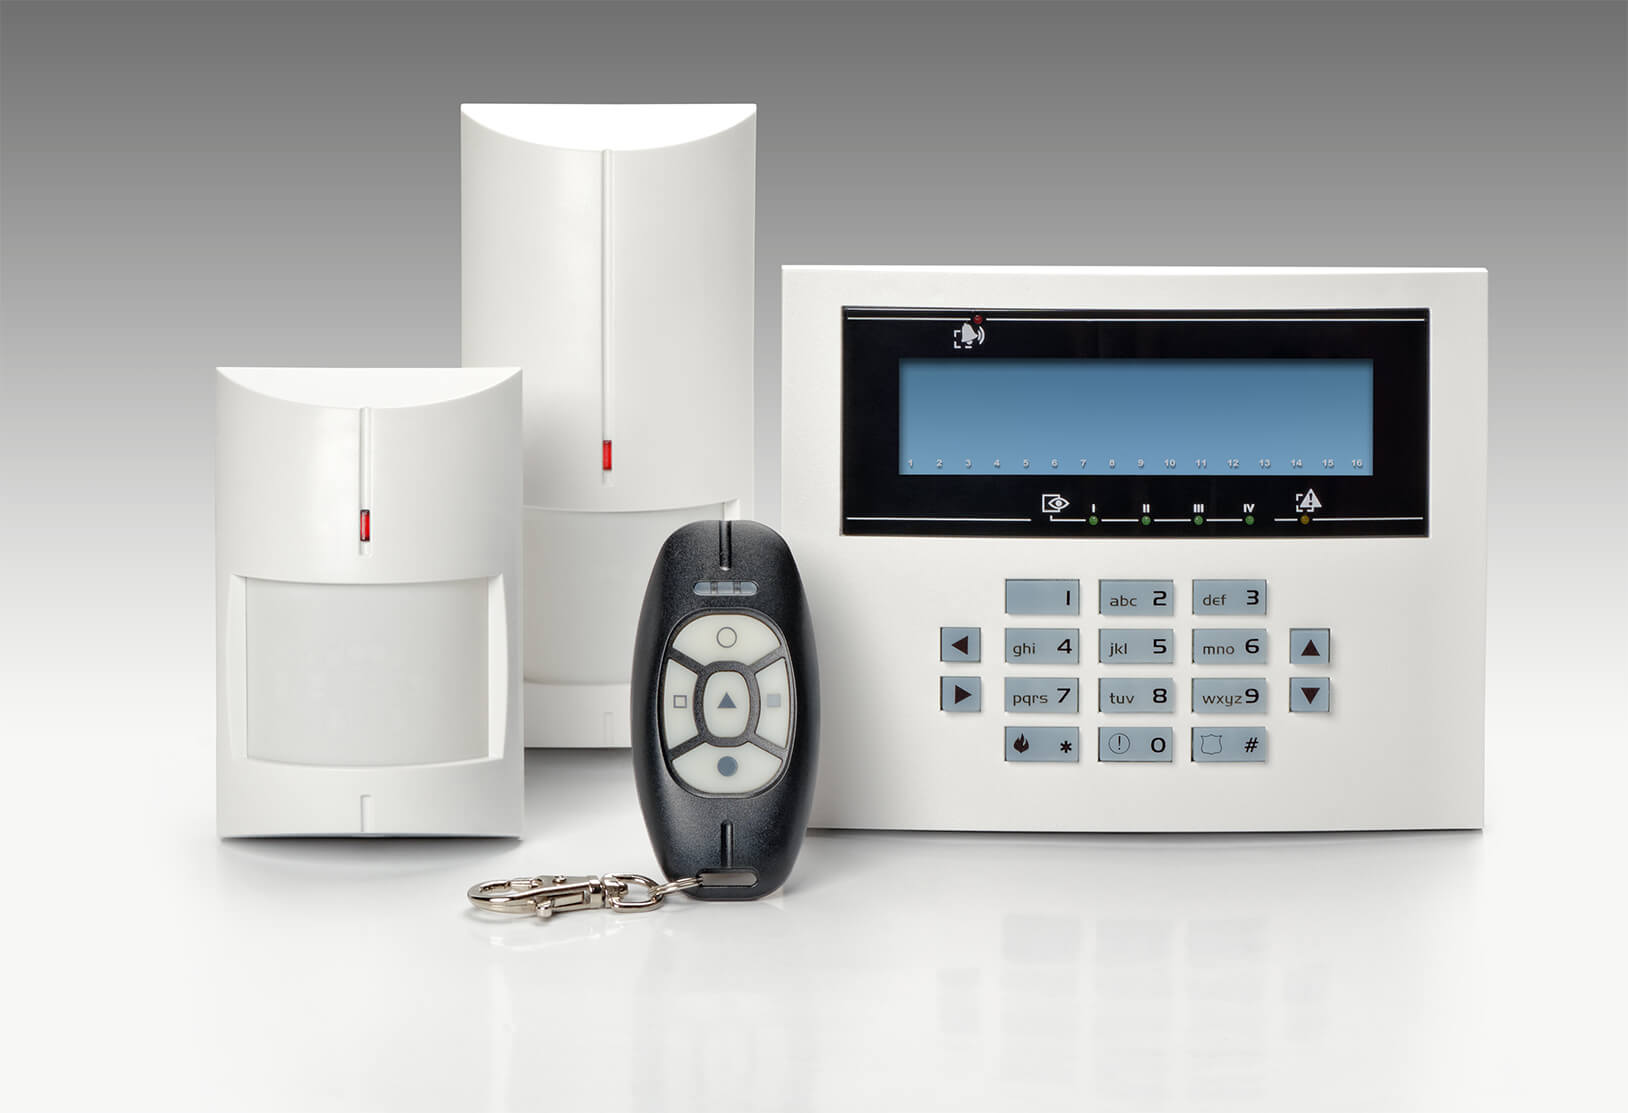 Business & Residential NACOSS Approved Burglar Alarms In St. Marylebone NW1 - Local St. Marylebone NW1 security company.Call 02078872244 - Dedicated to Safety & Security. Companies, shops and homes ..